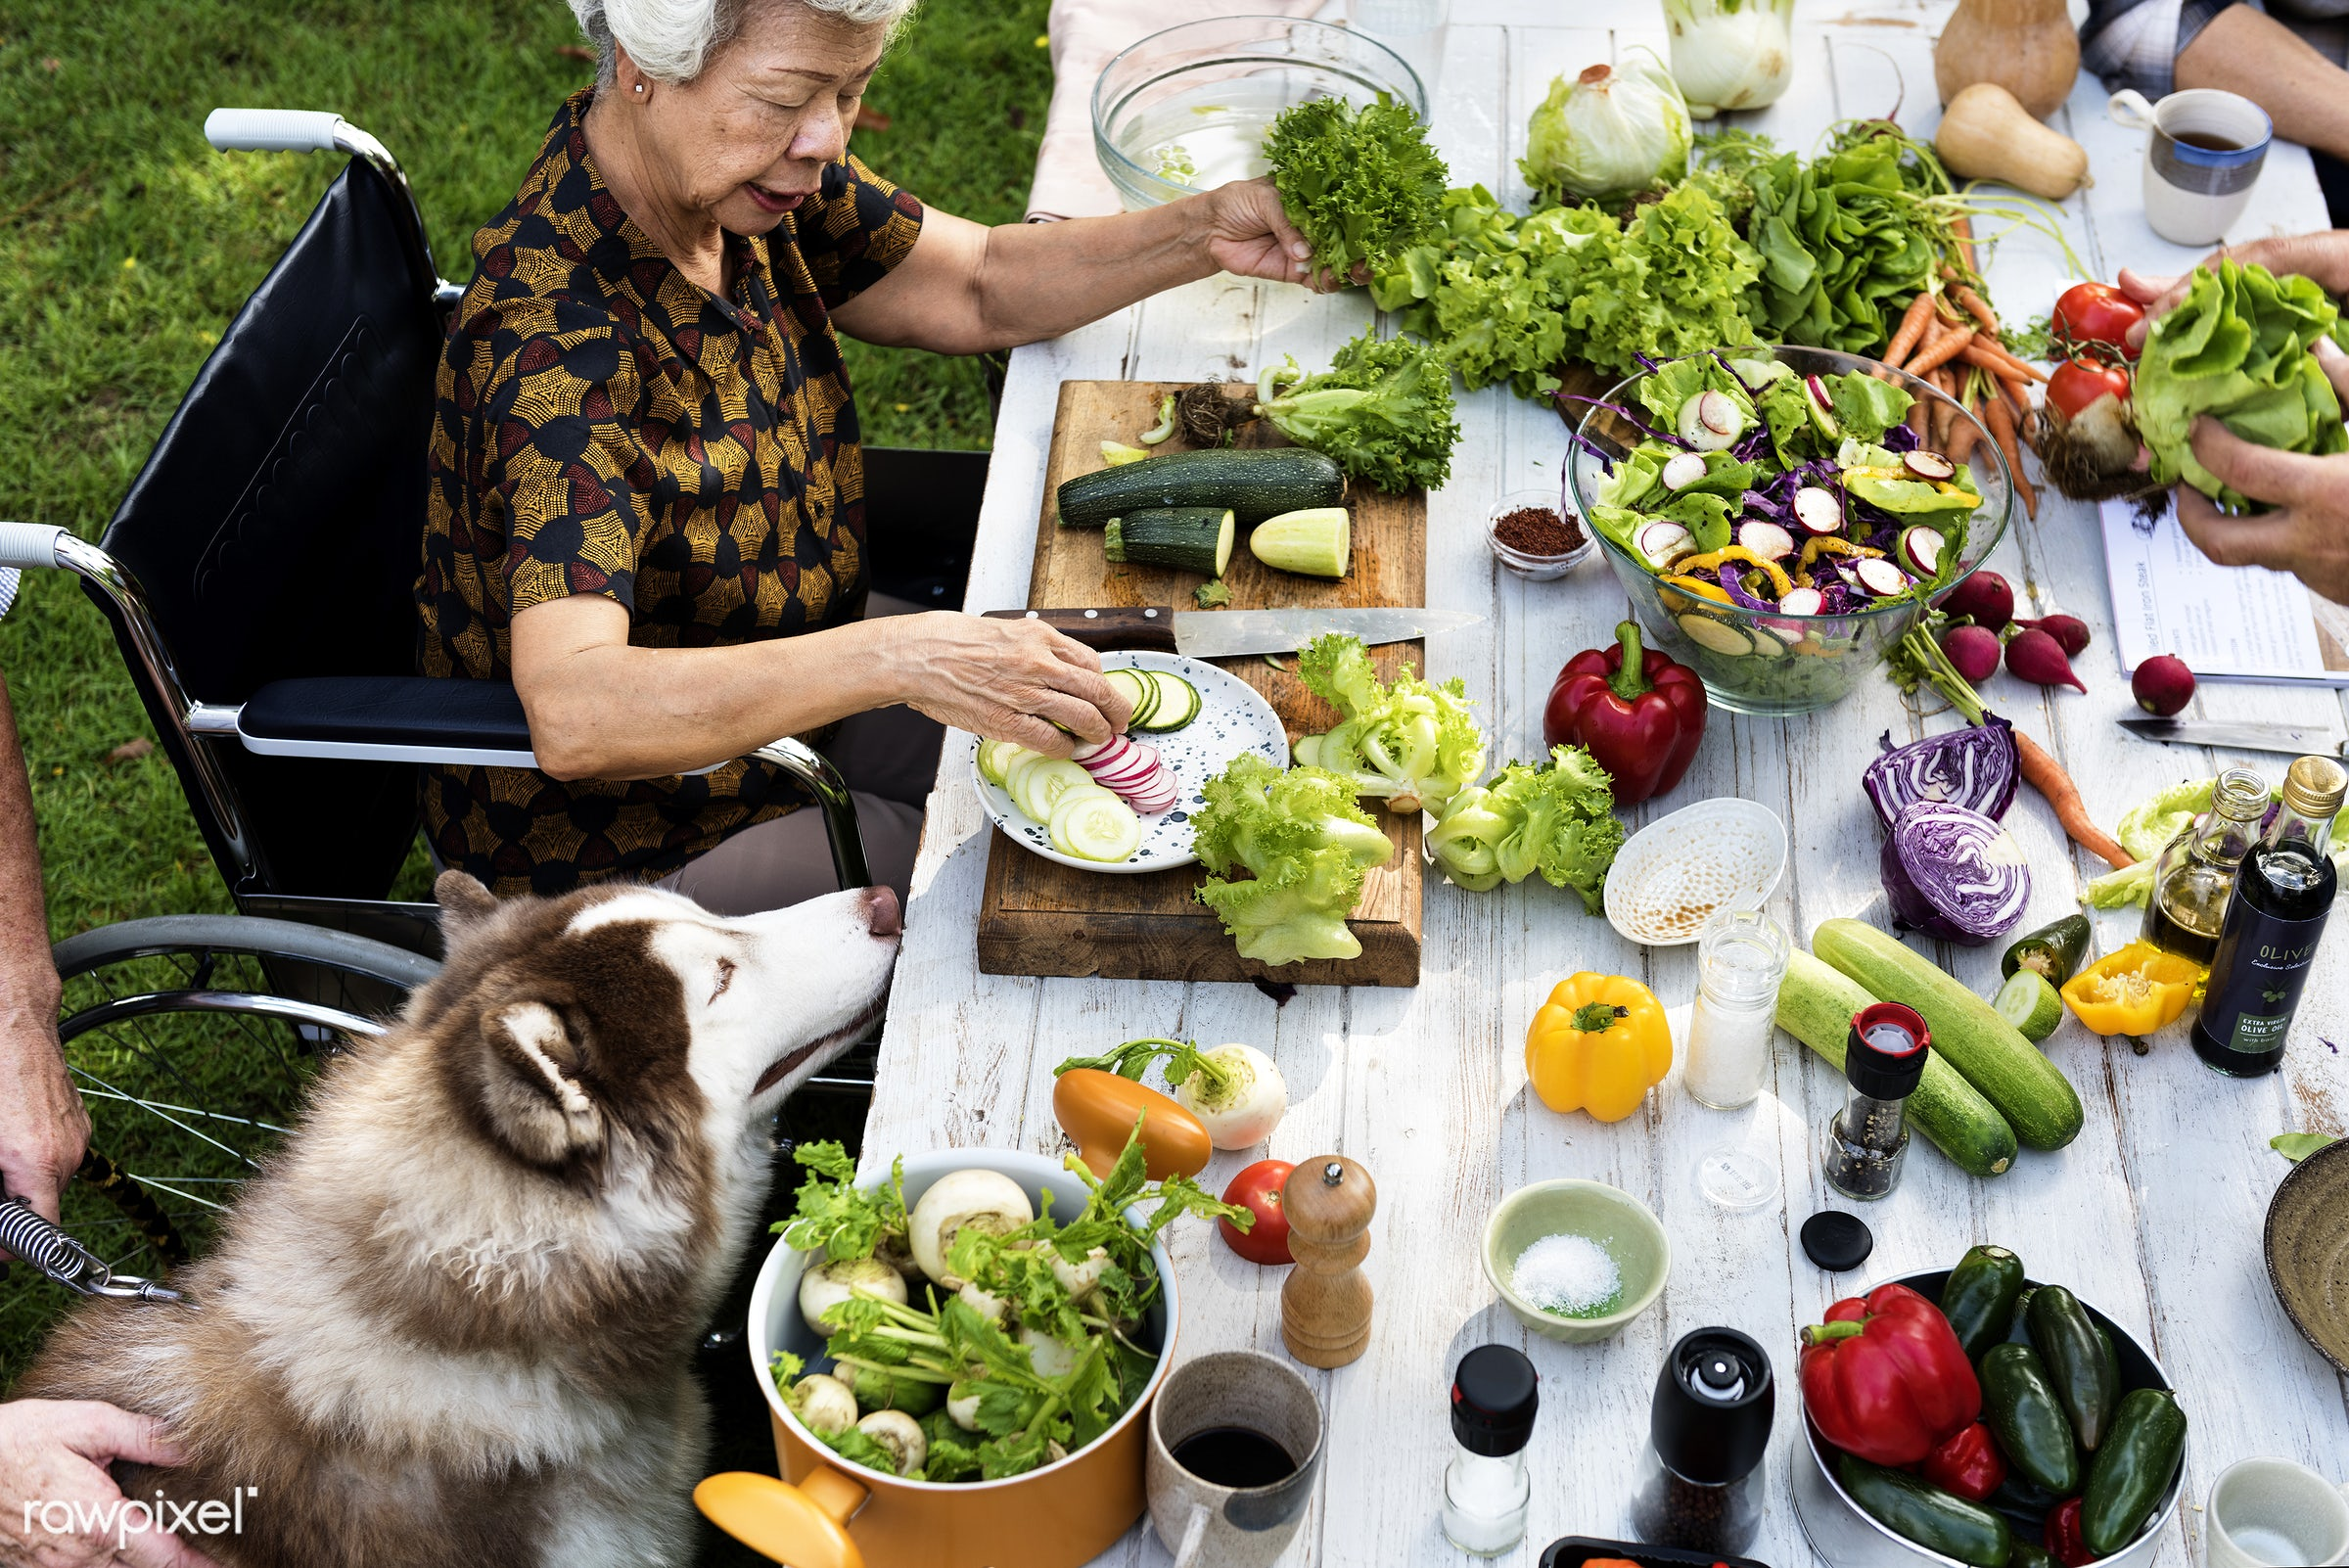 different, salad, recipe, cuisine, homemade, fresh, wheelchair, woman, ingredient, cooking, knife, gourmet, meal, cook,...